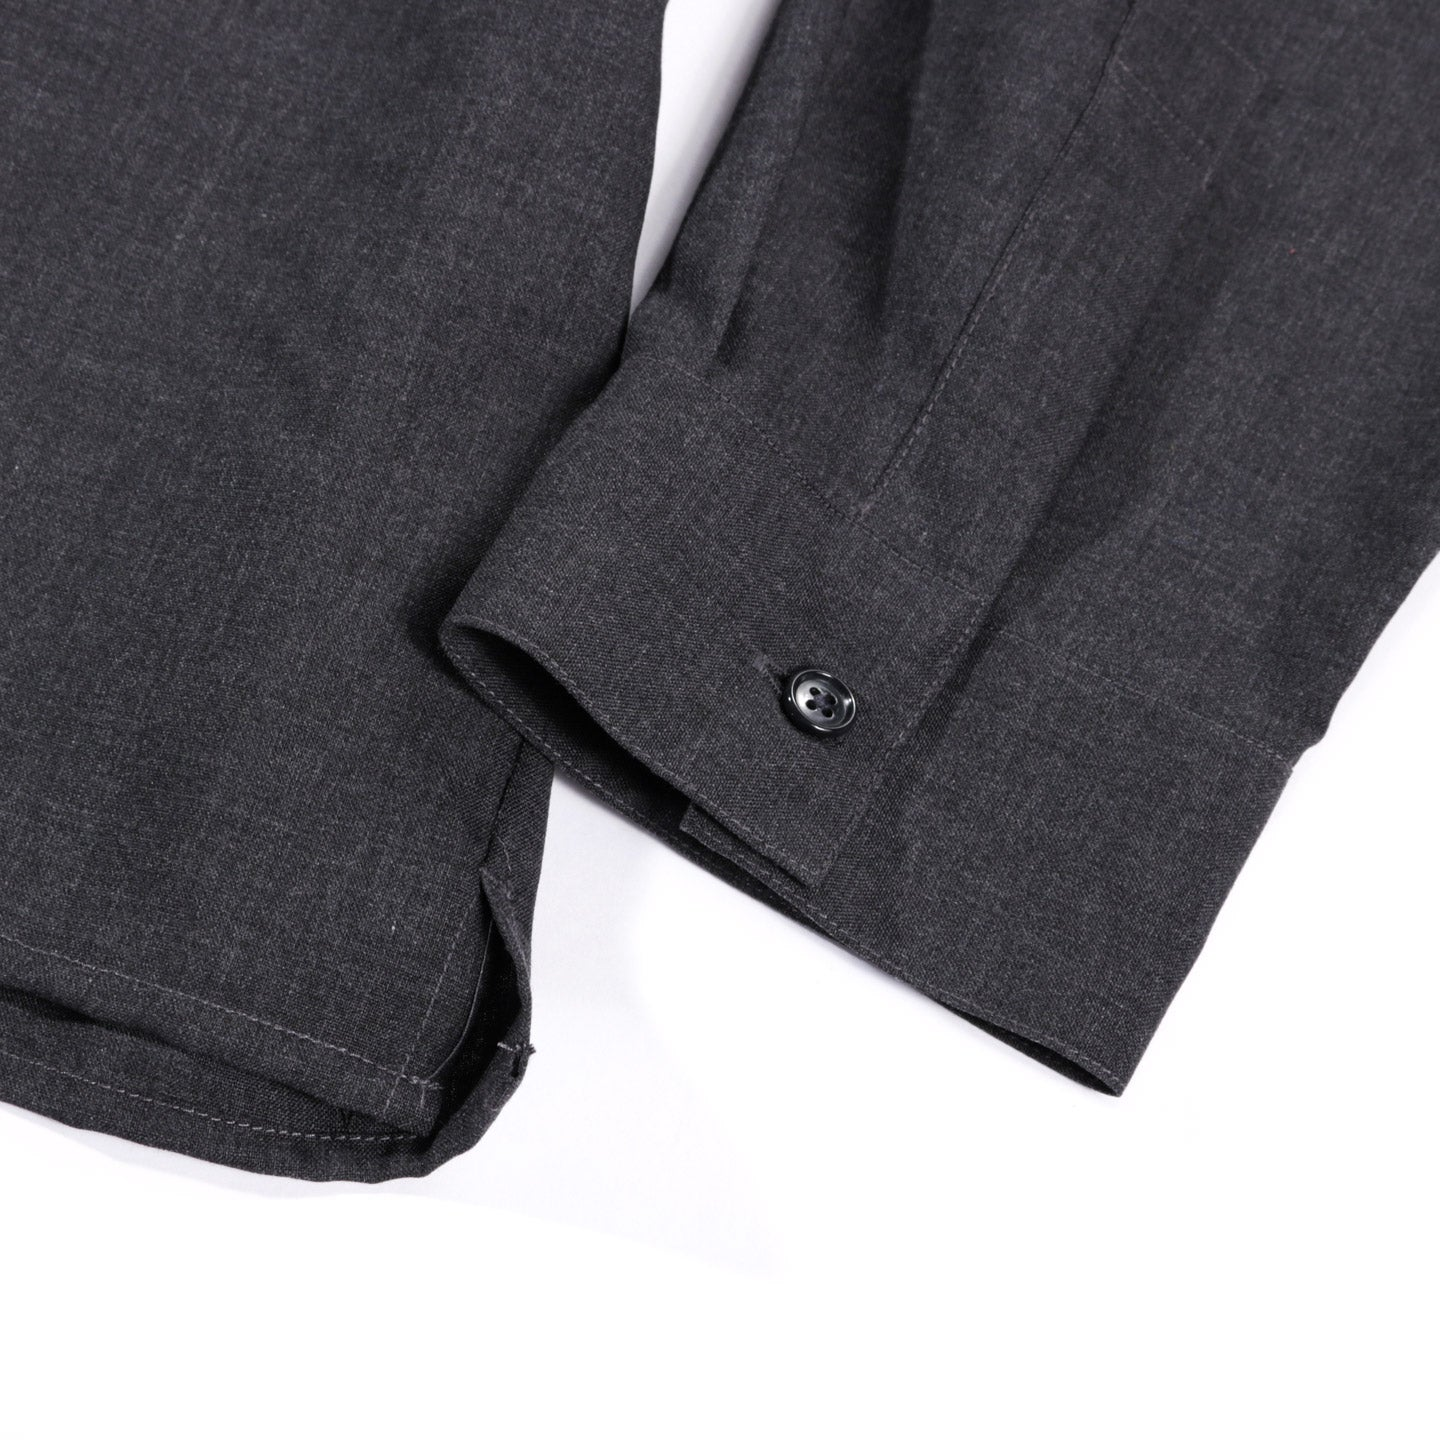 STILL BY HAND WASHABLE WOOL SHIRT CHARCOAL